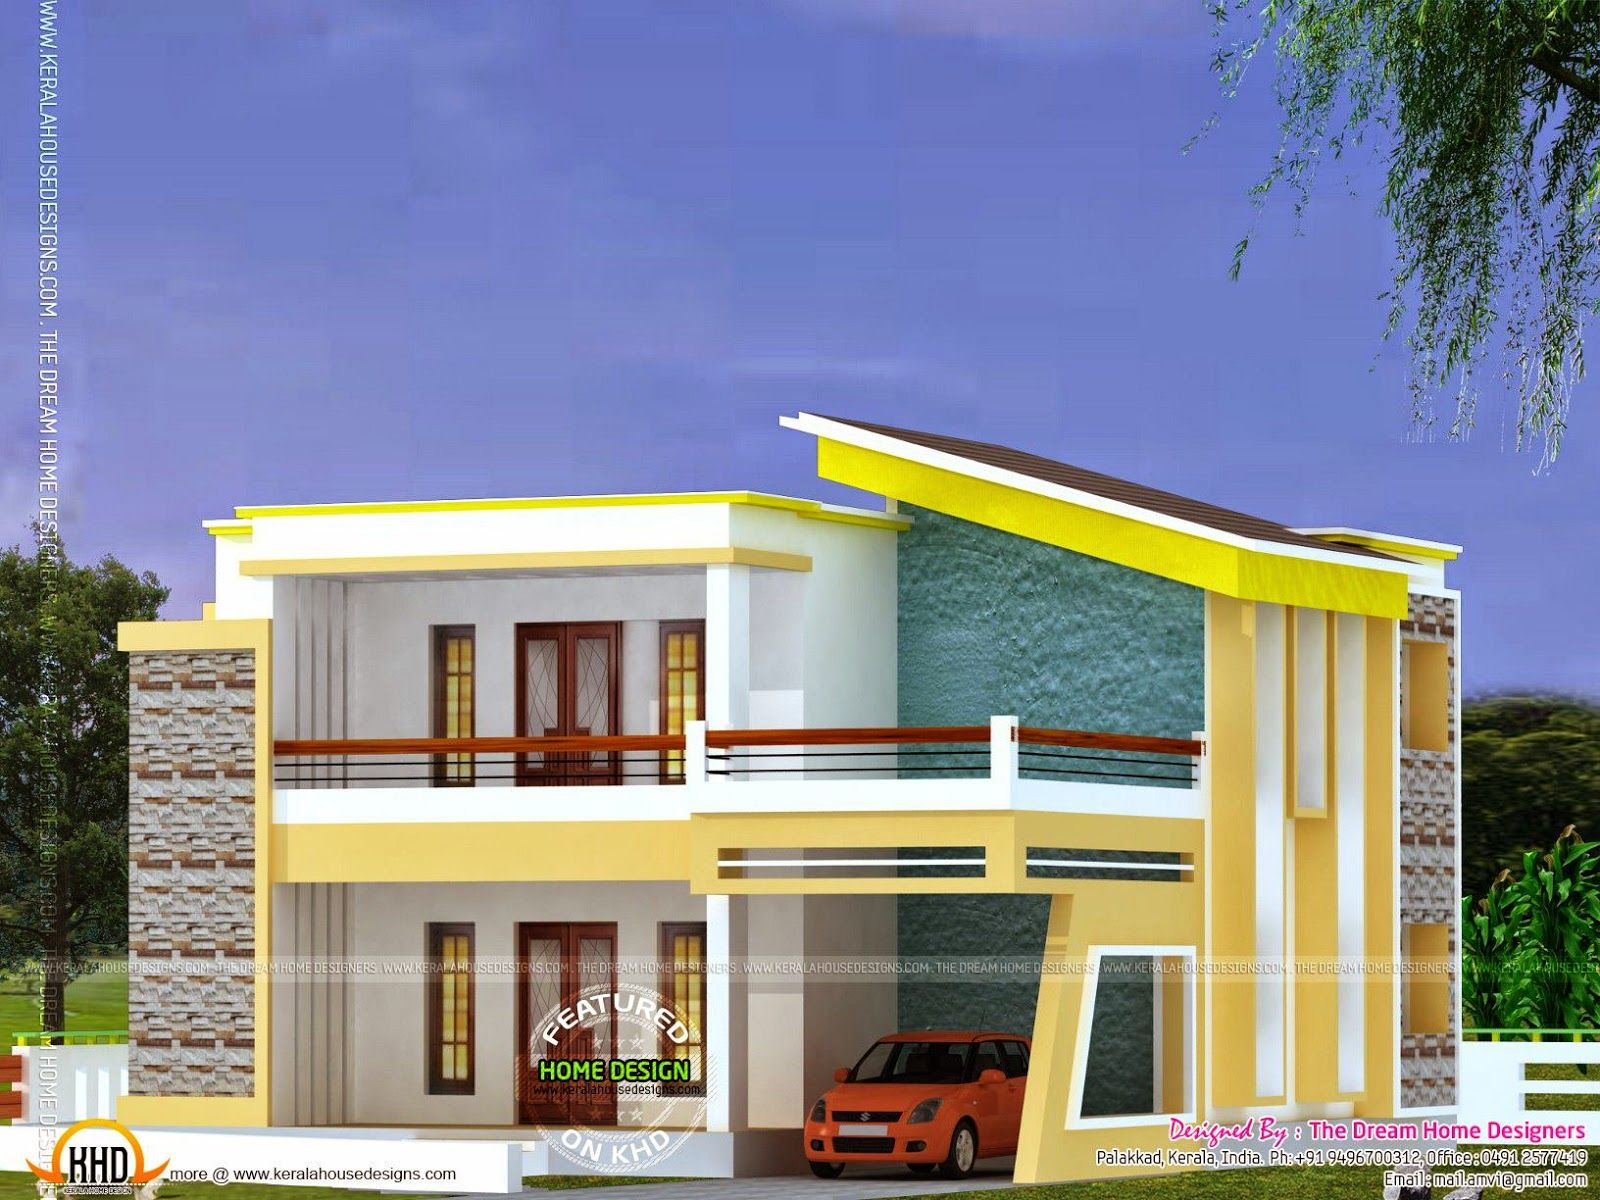 Flat roof design flat roof house plan and elevation for Kerala home design flat roof elevation